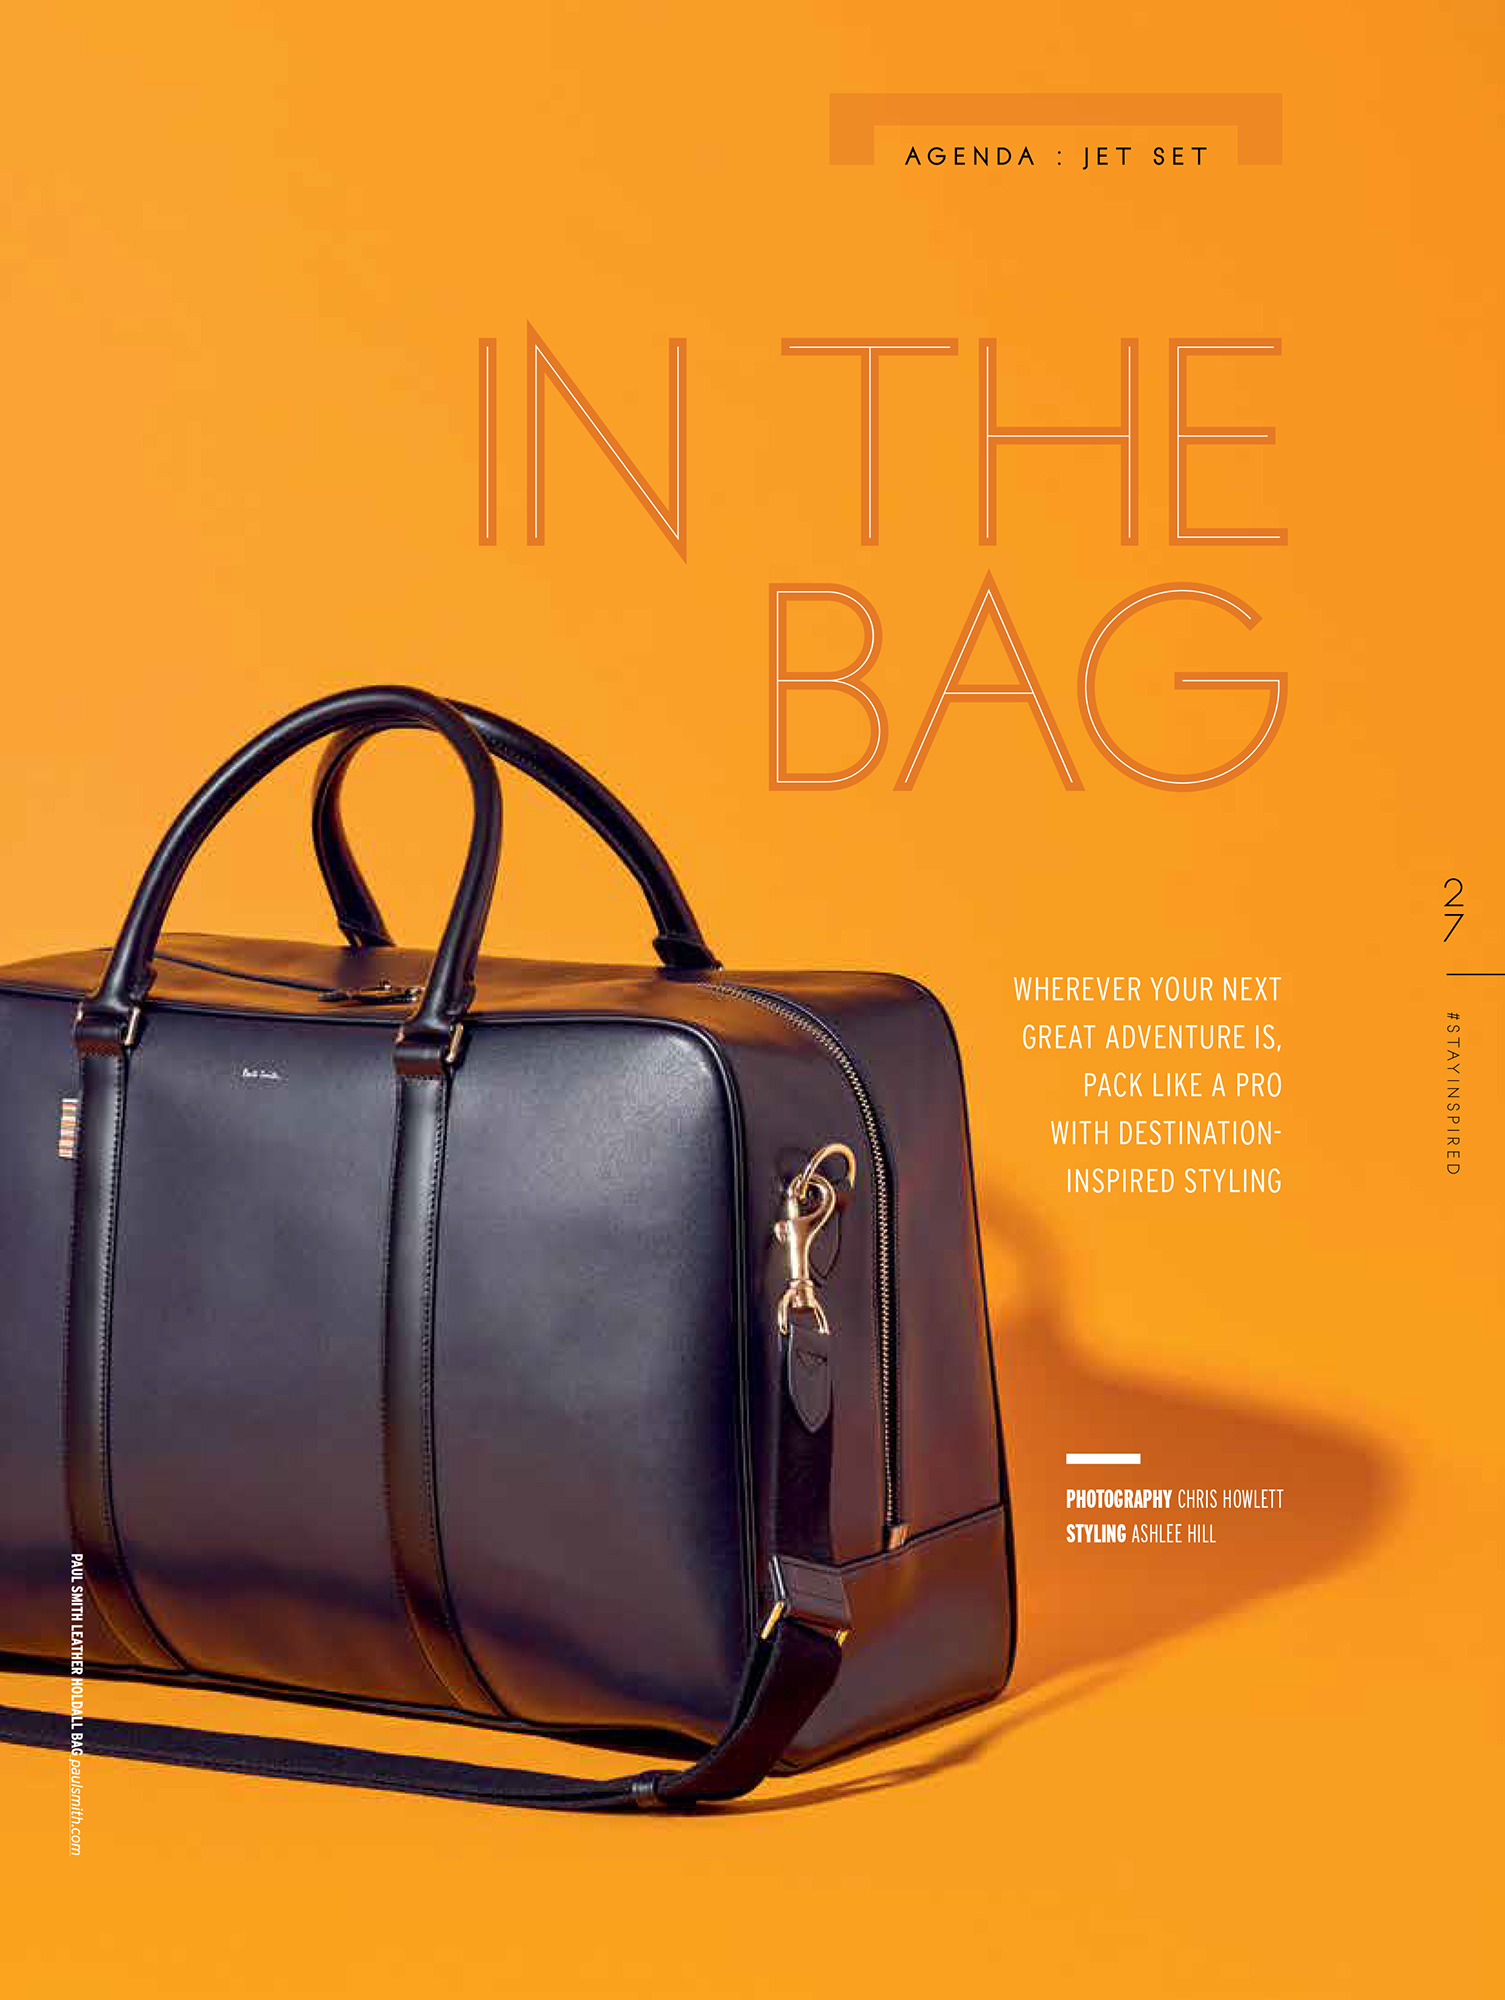 mens bag, fashion still for magazine publication, still life photography from London jewellery and product photographer Chris howlett